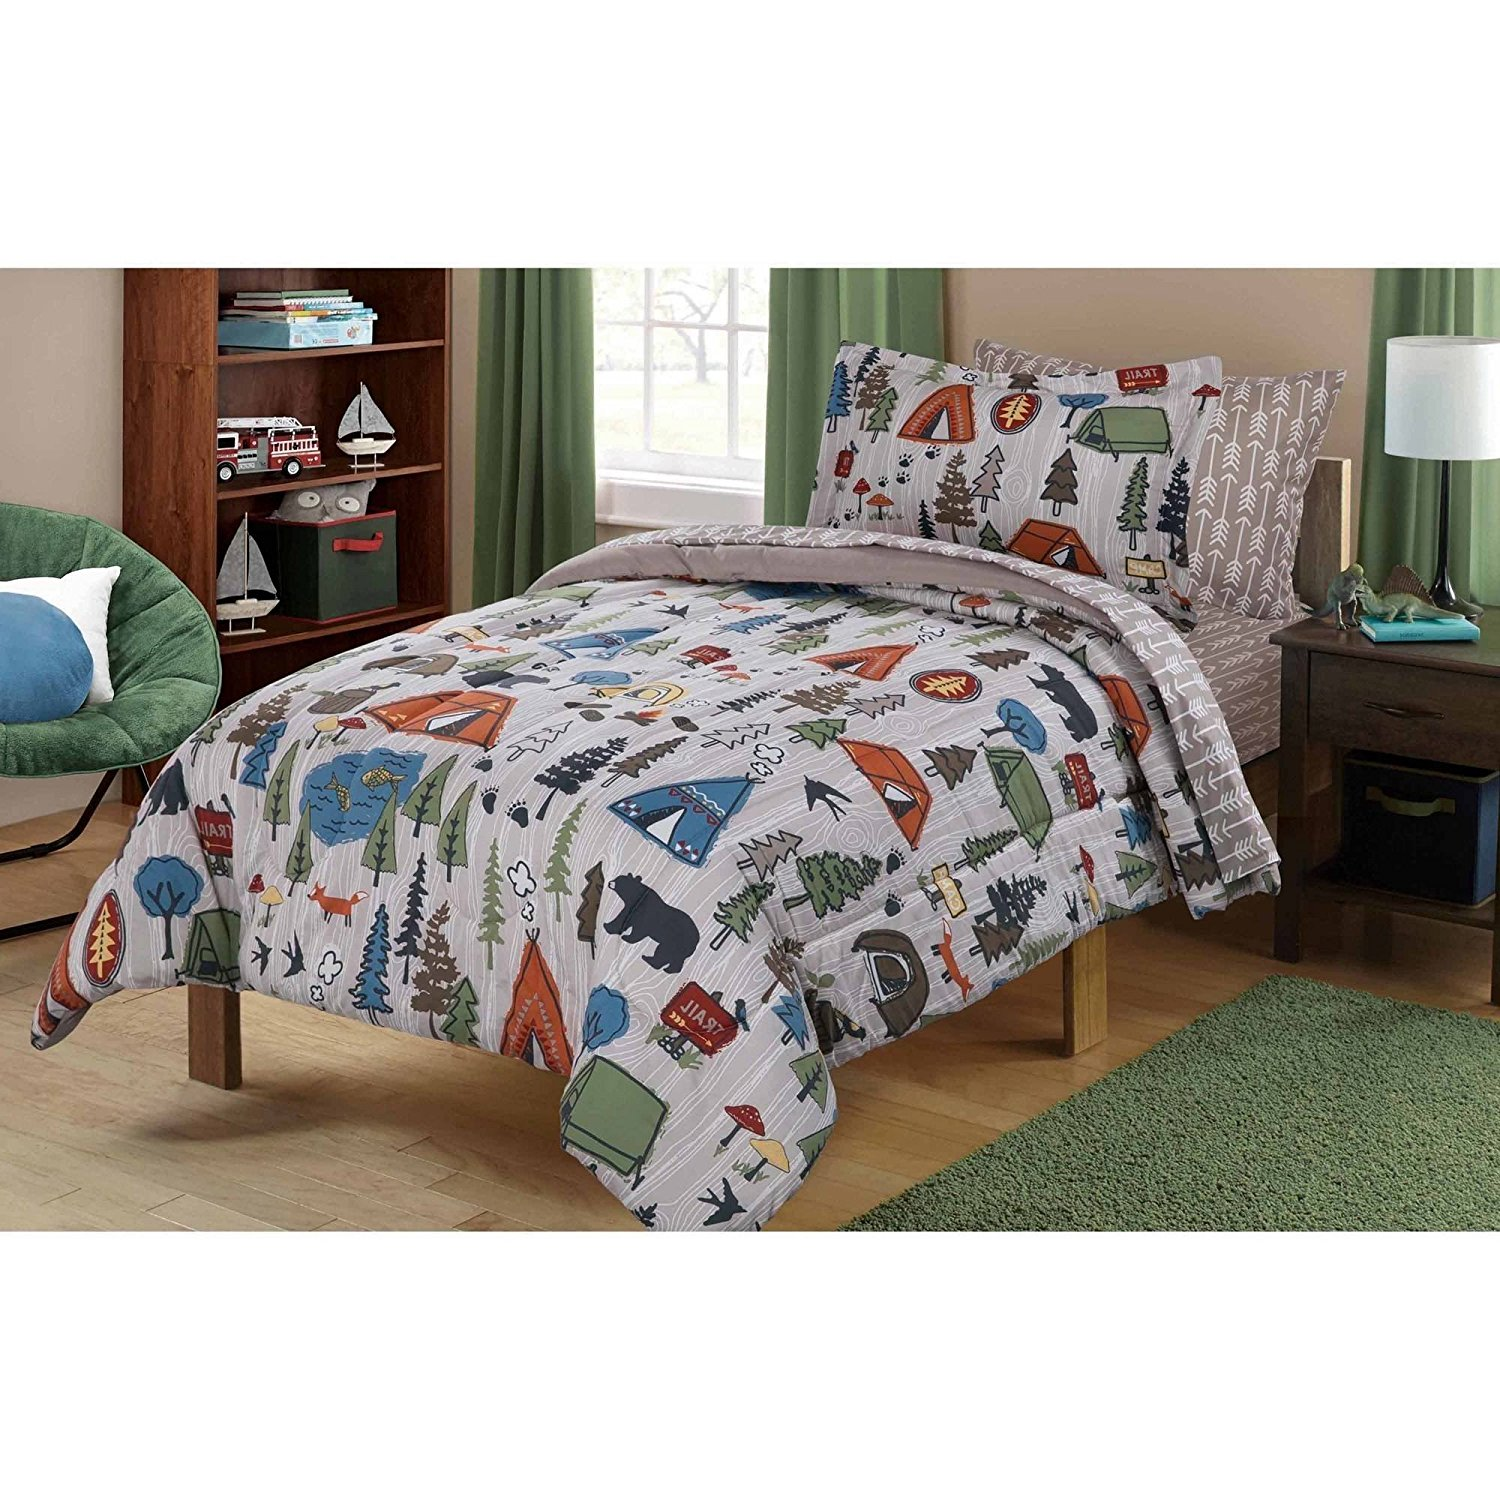 N2 5 Piece Kids Grey Cute Camping Themed Comforter Twin Set, Outdoors Camp Pattern Bedding Bears Pinetrees Tents Trees Wilderness Trails Hiking Forest, Brown Orange Green Polyester Microfiber